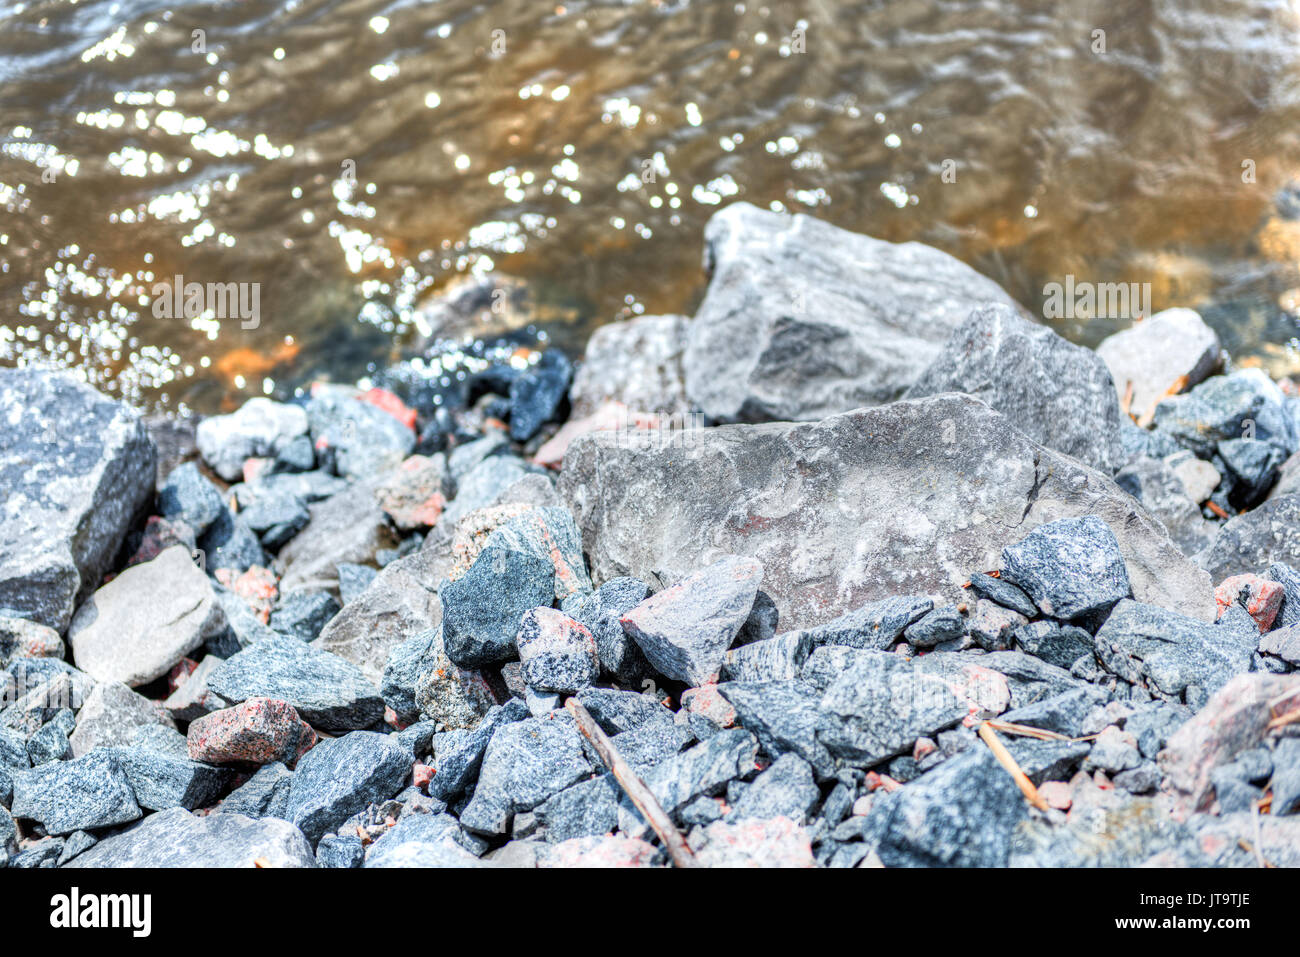 Colorful rocks on Saint Laurent or Lawrence river in Quebec, Canada during summer with brown water Stock Photo